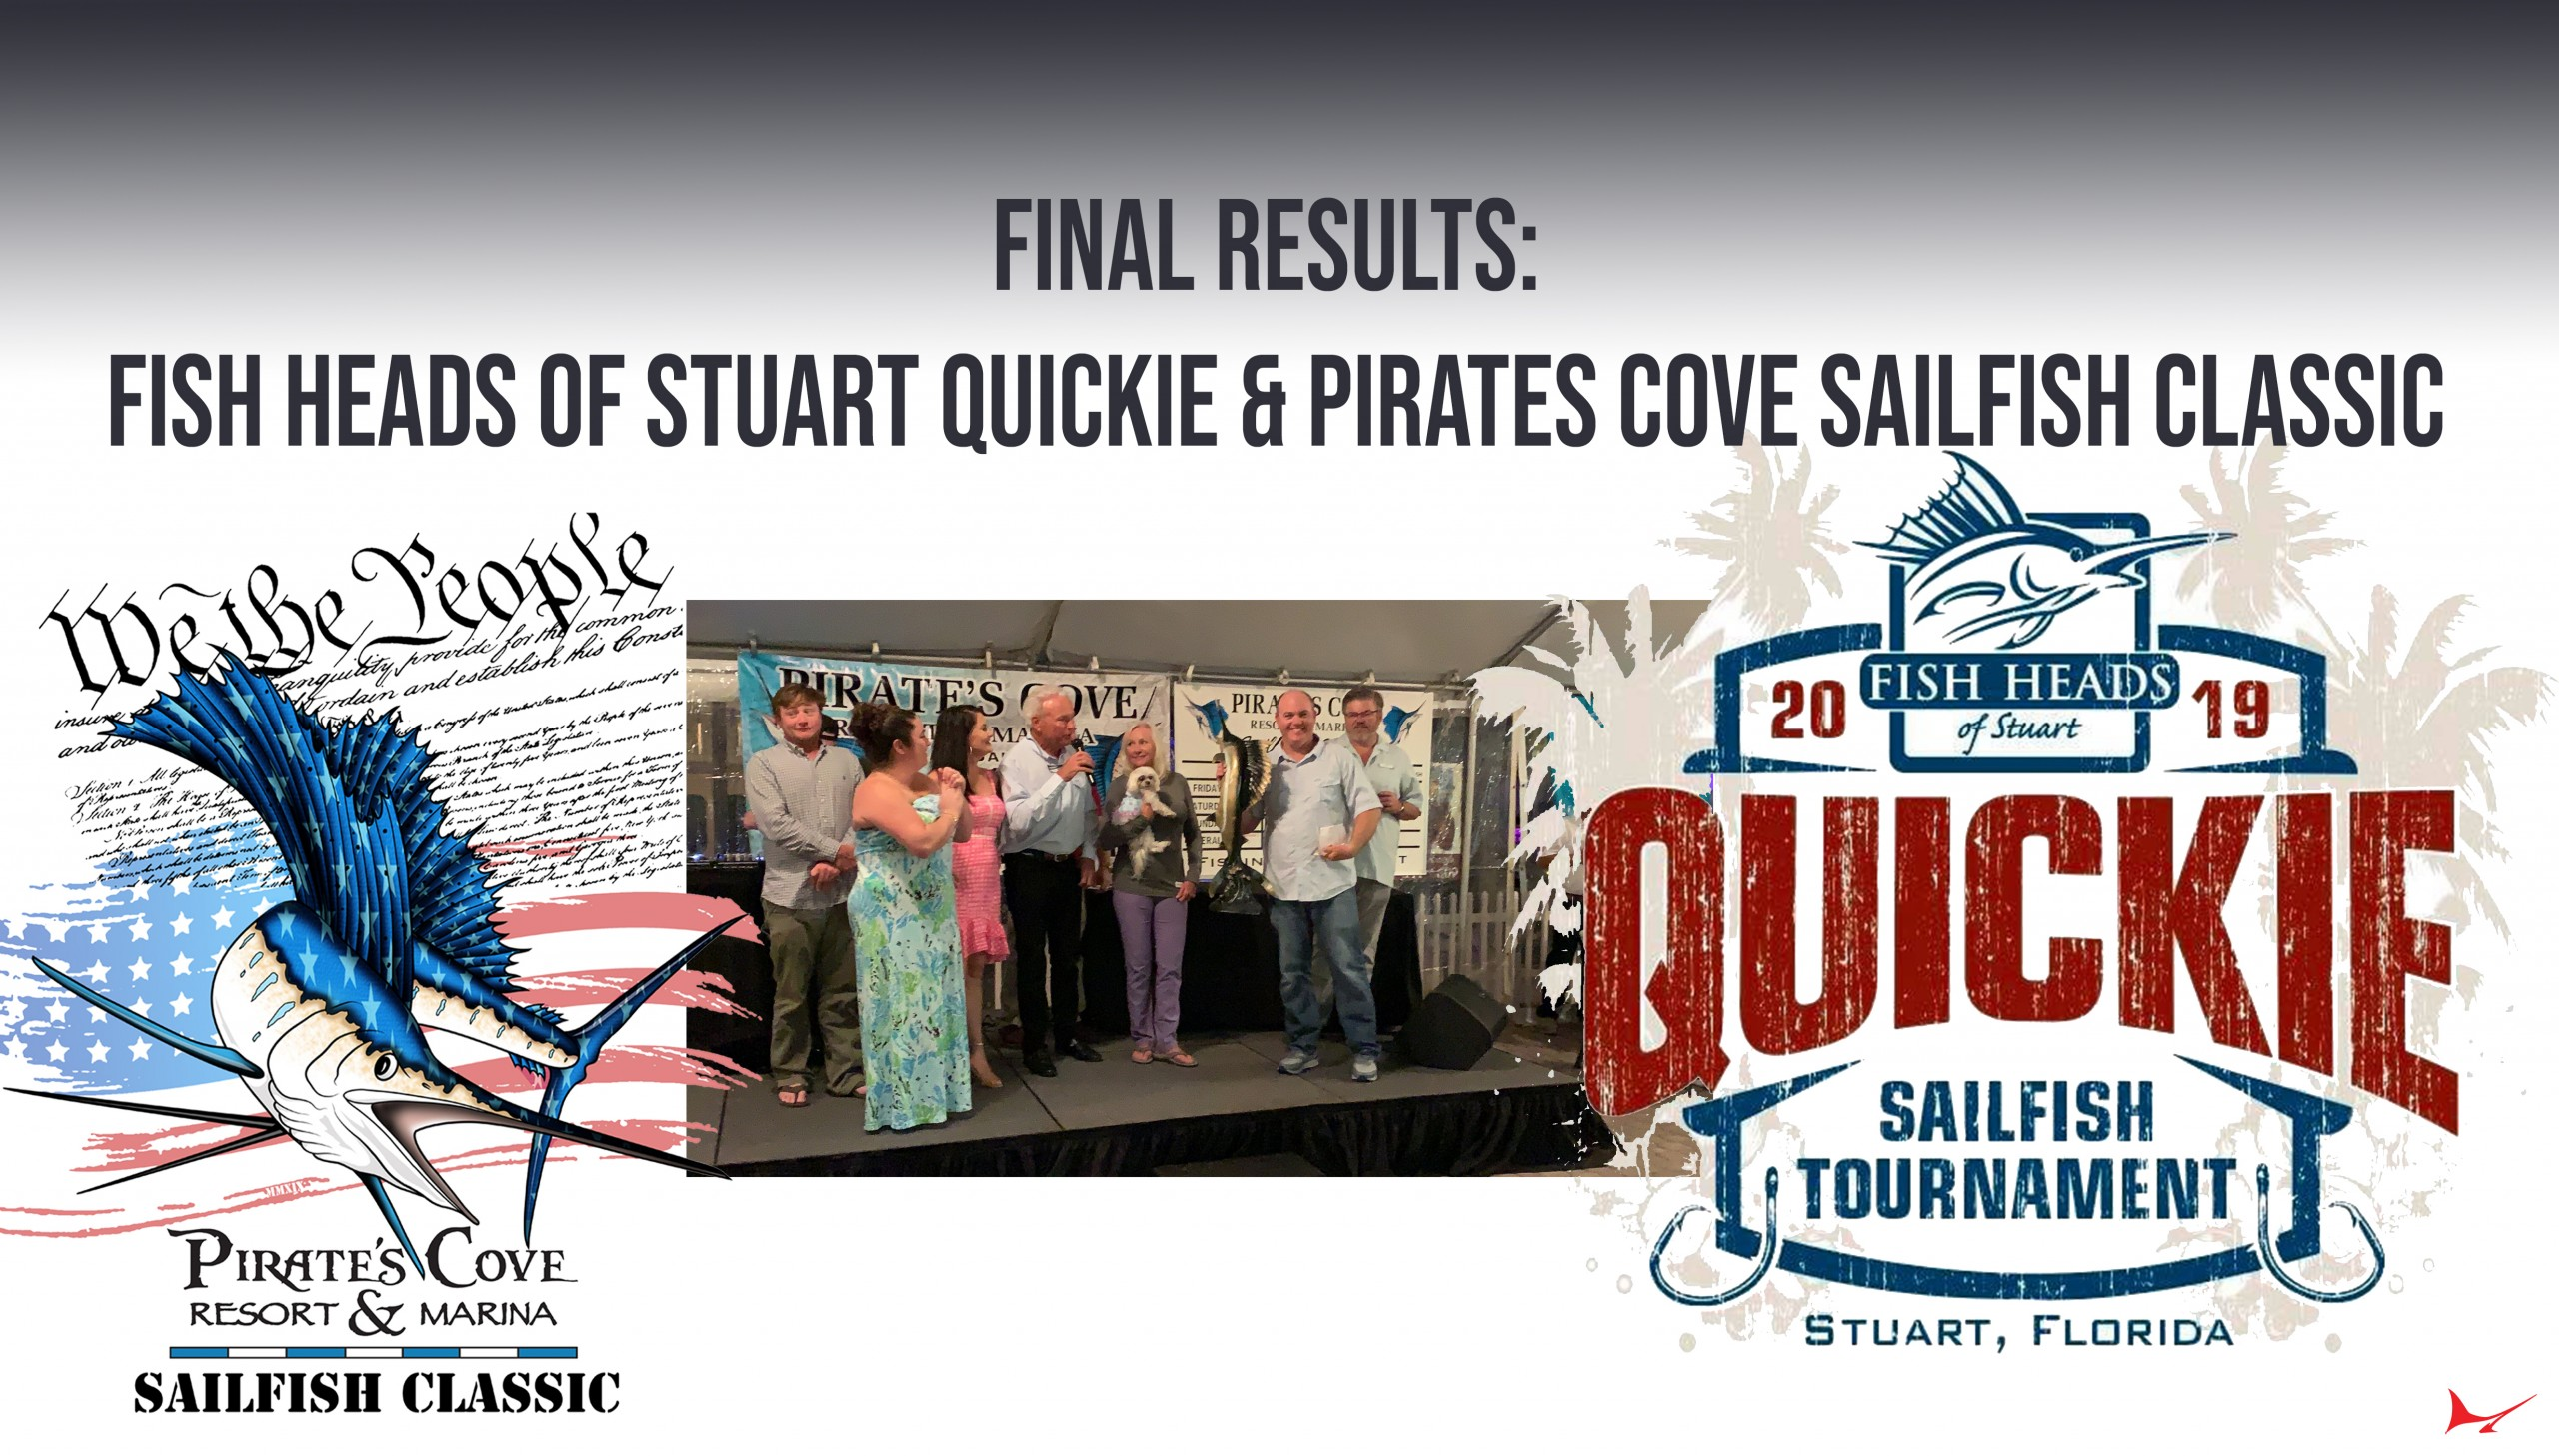 Final Results: Fish Heads of Stuart Quickie & Pirates Cove Sailfish Classic